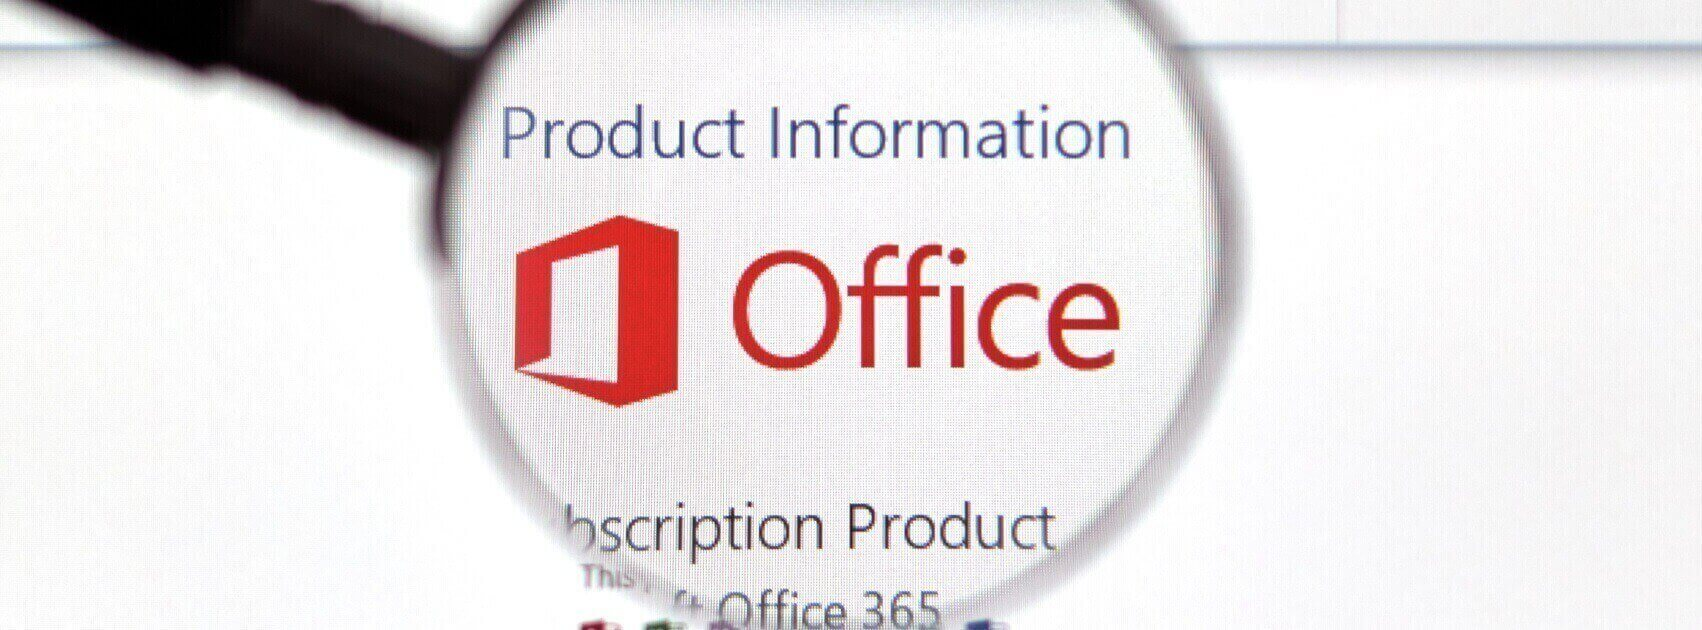 Most Common Office 365 Products: What's Included & What Are the Benefits?